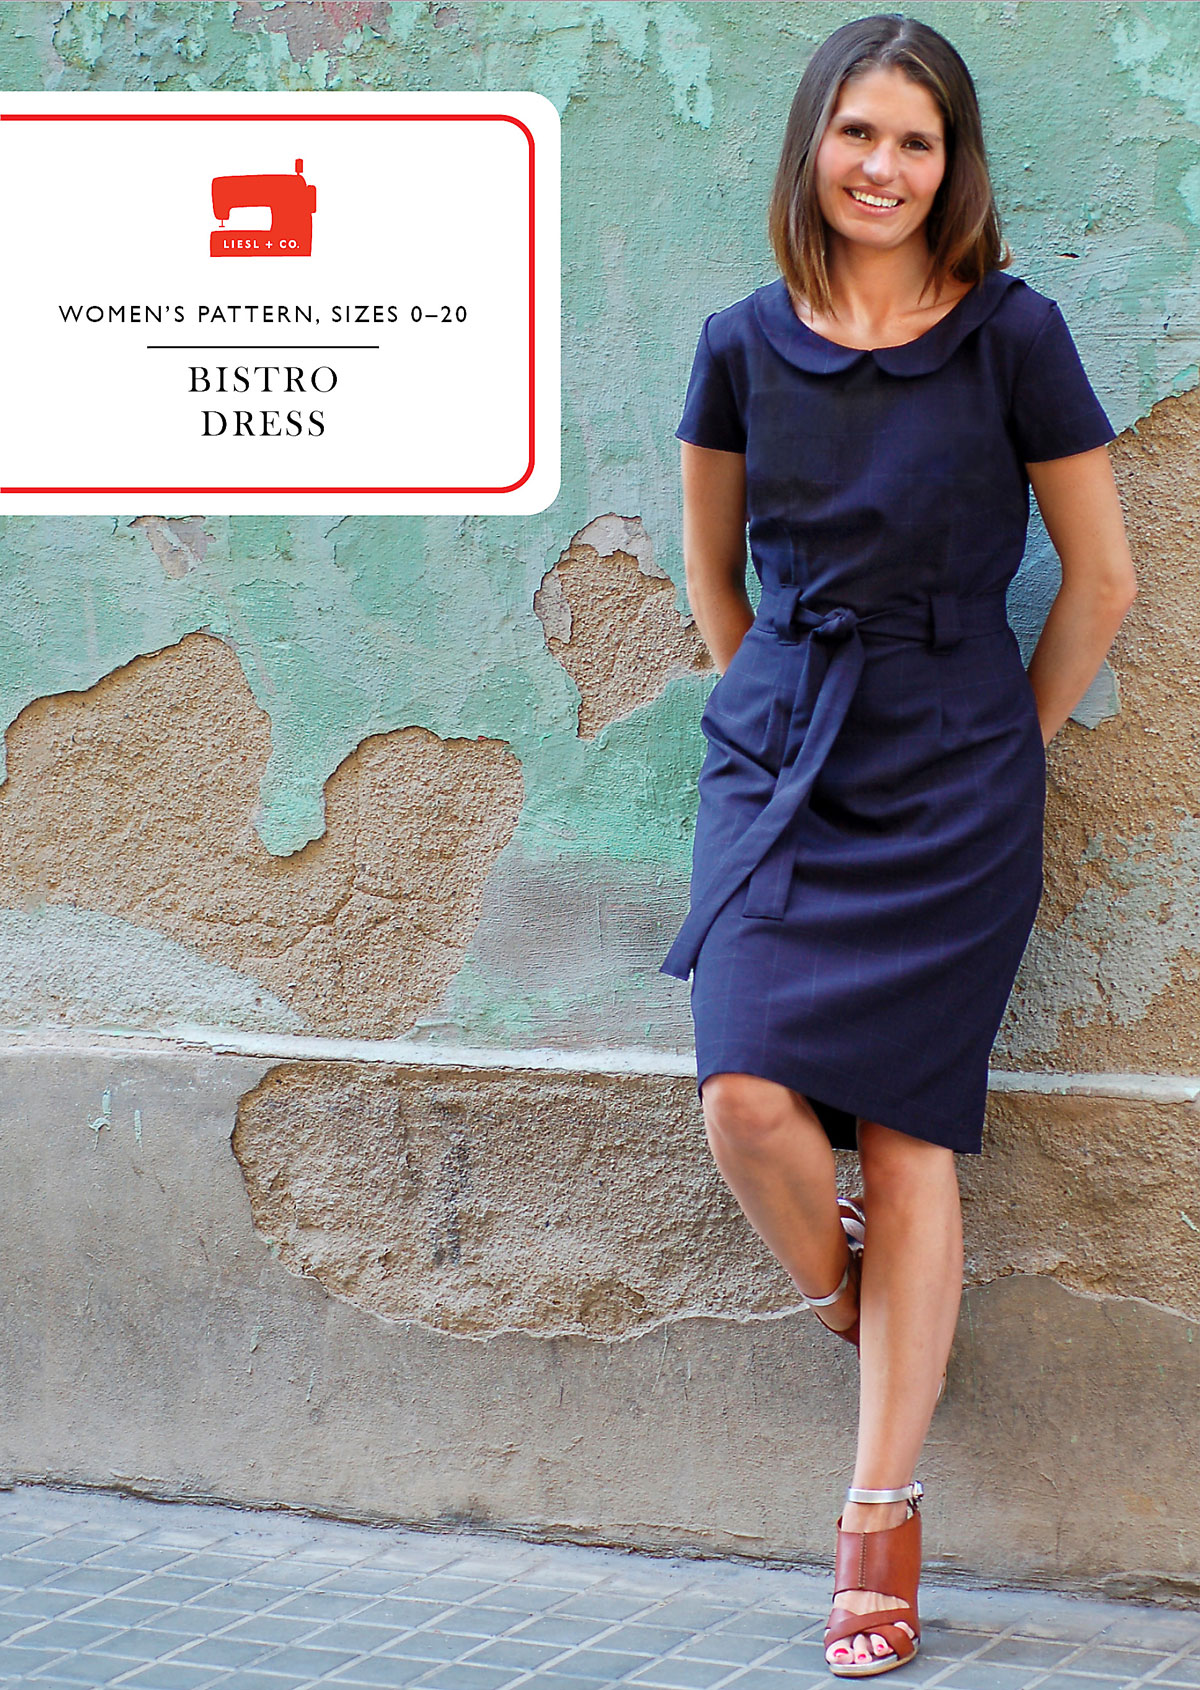 Introducing the Liesl + Co Bistro Dress Pattern | Blog ...